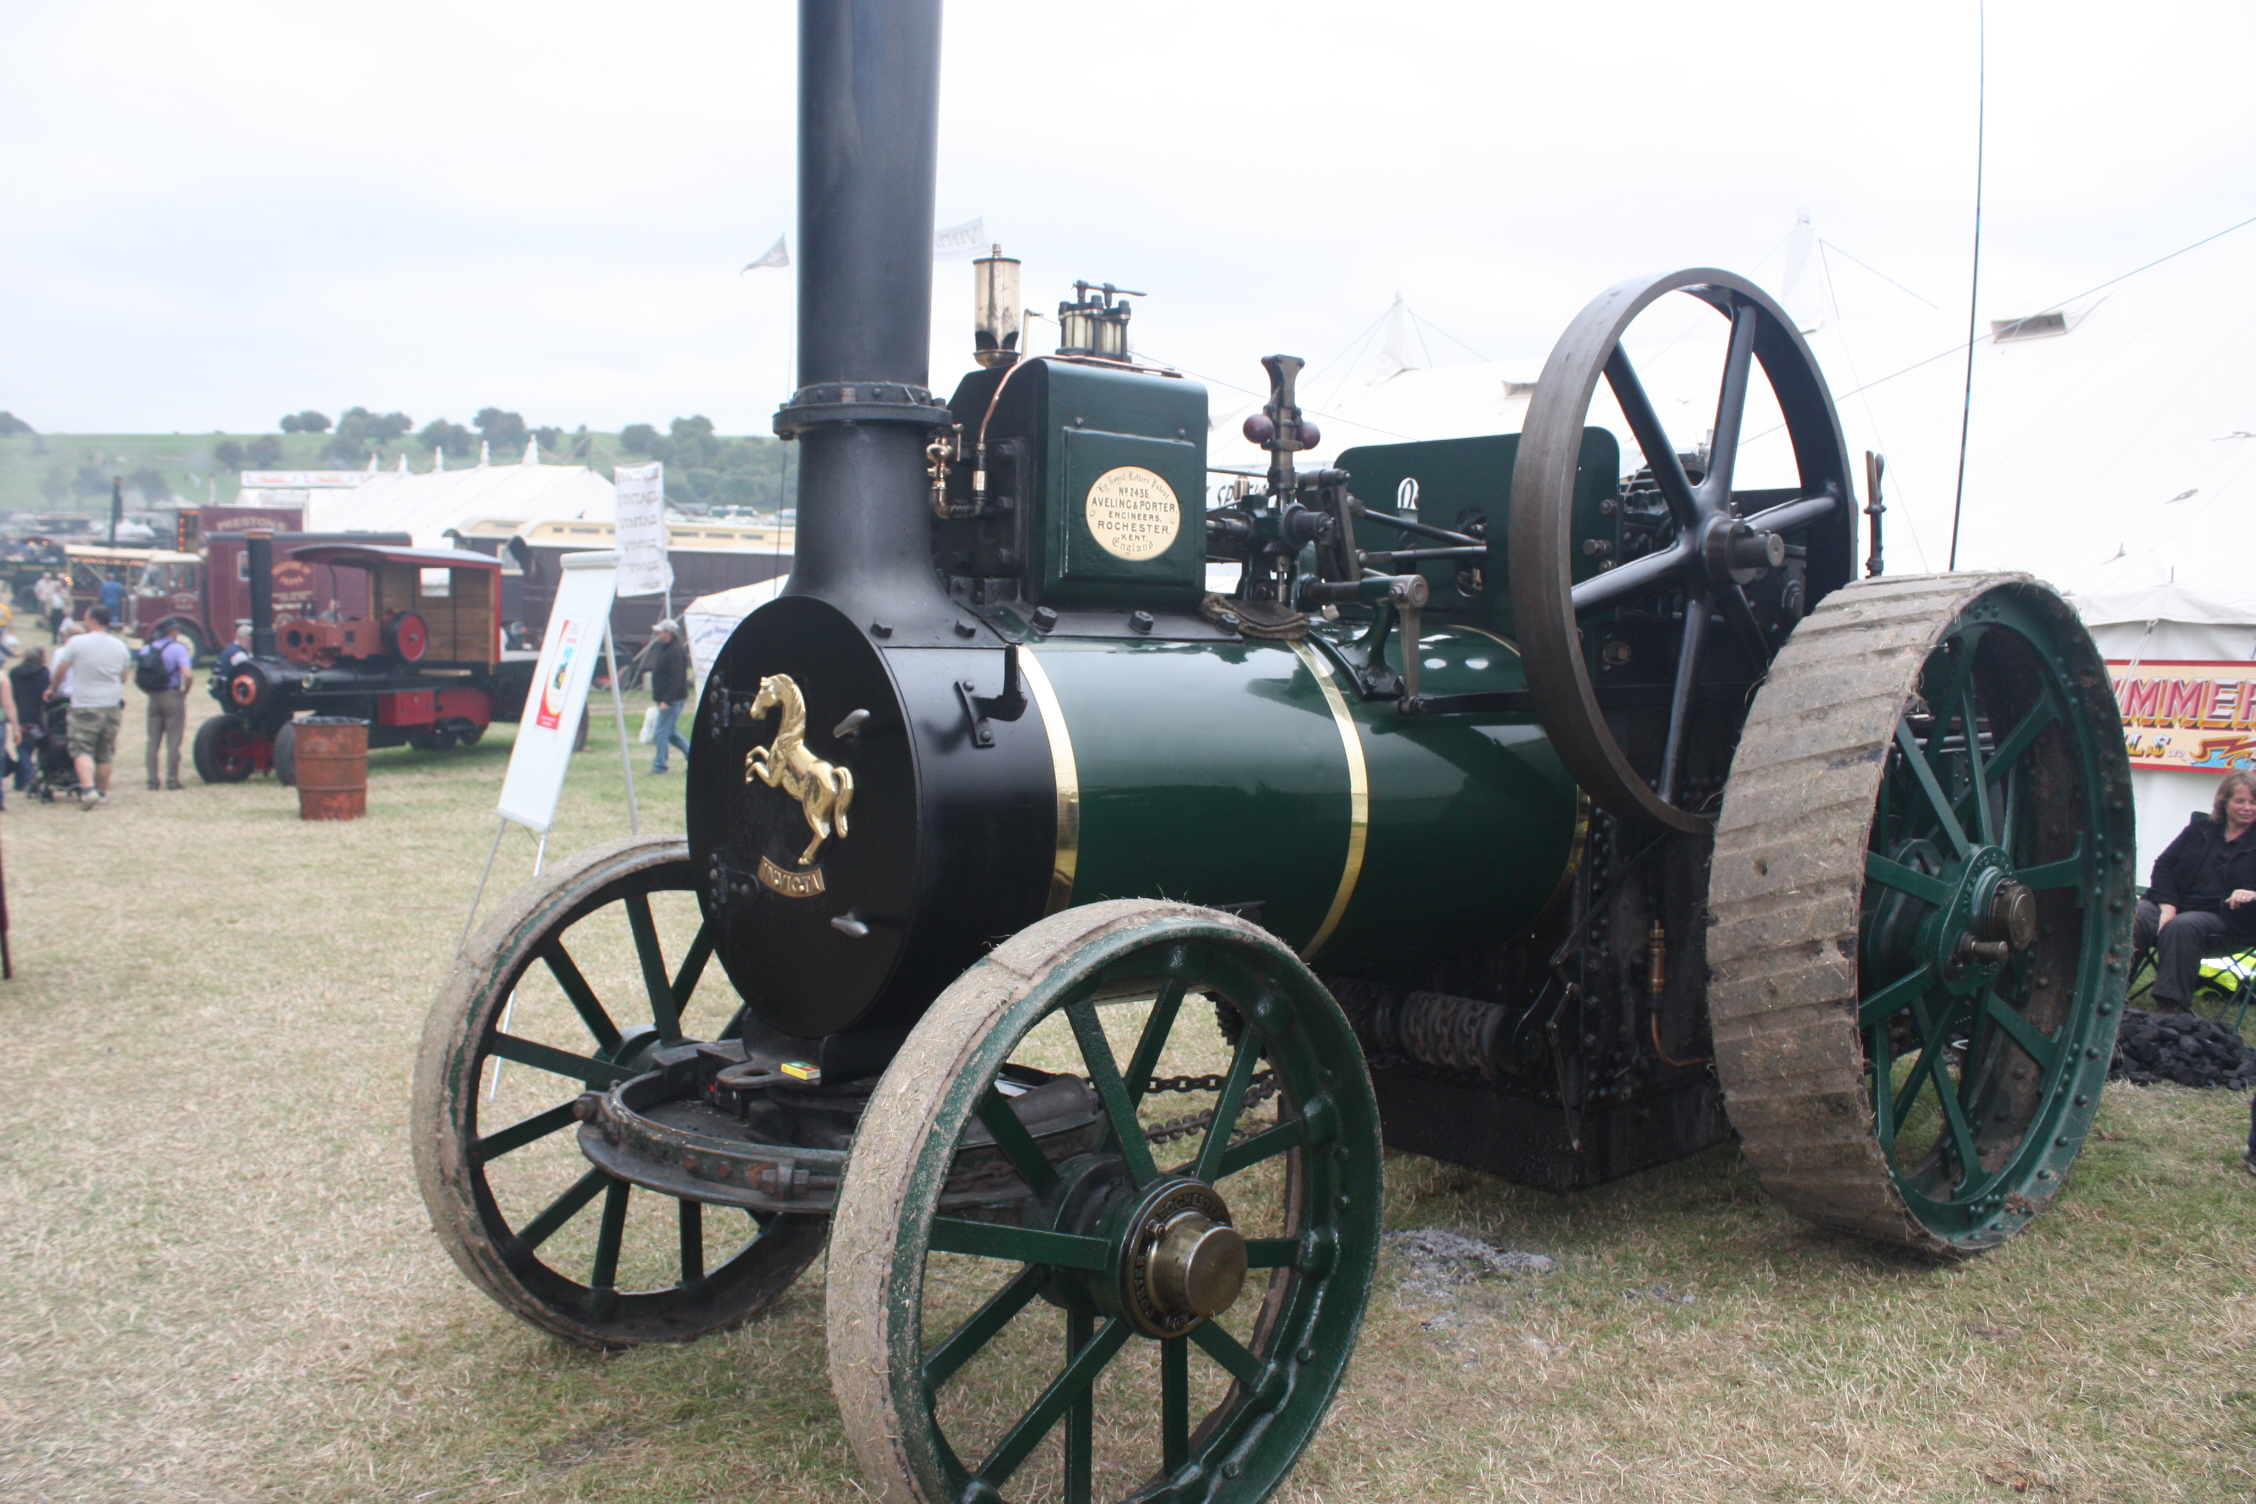 Aveling porter no 2436 tractor construction plant wiki the classic vehicle and - Porter international wiki ...